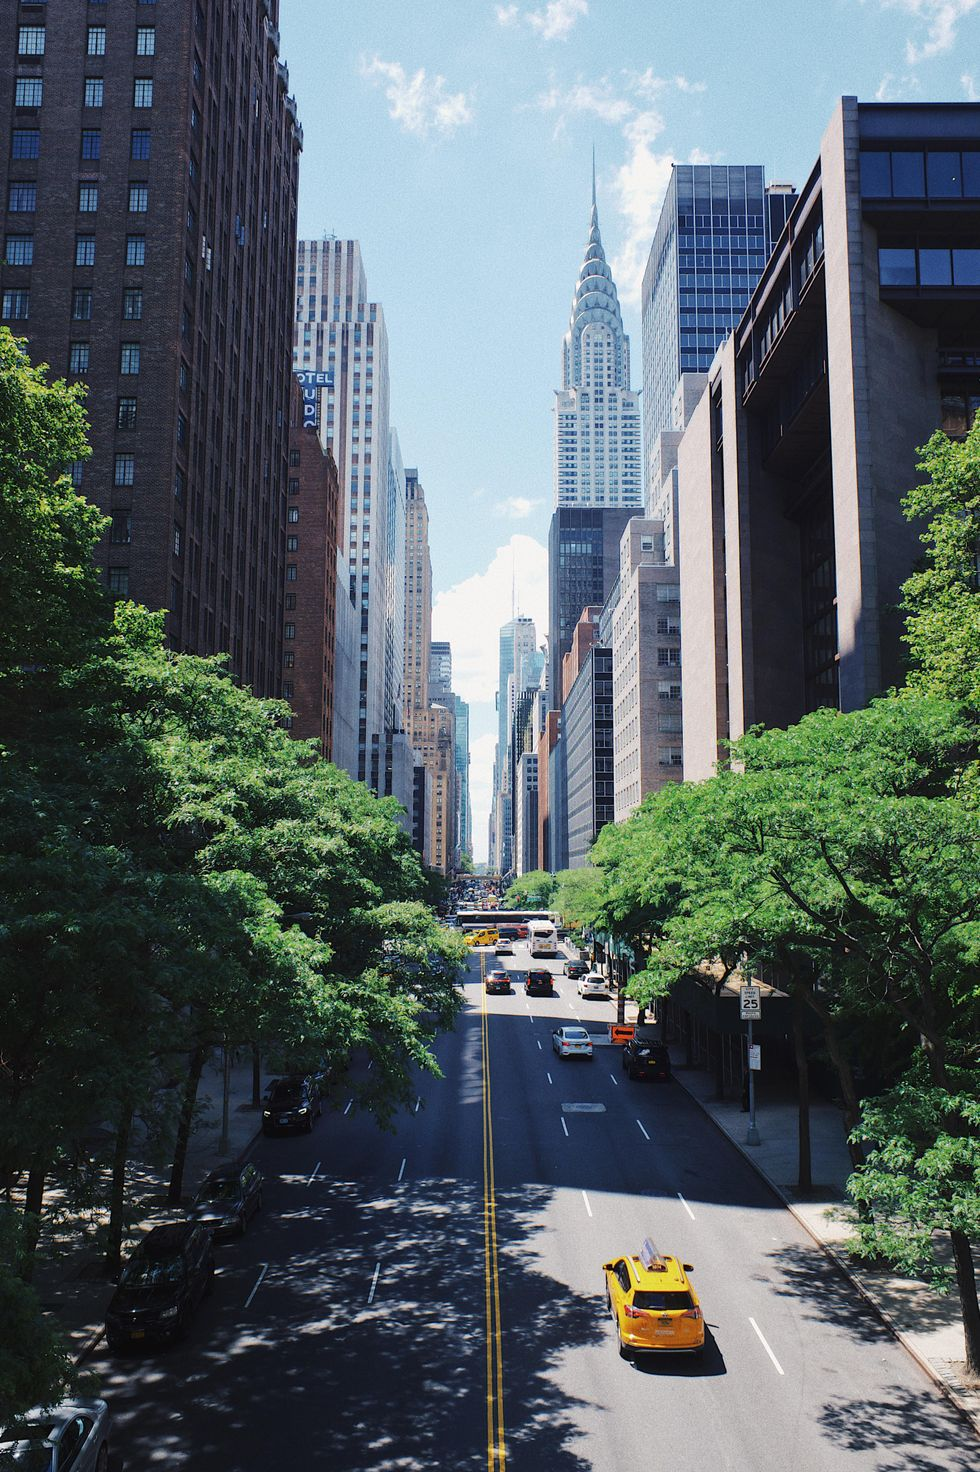 My Top 5 Favorite Things To Do In NYC In Summer